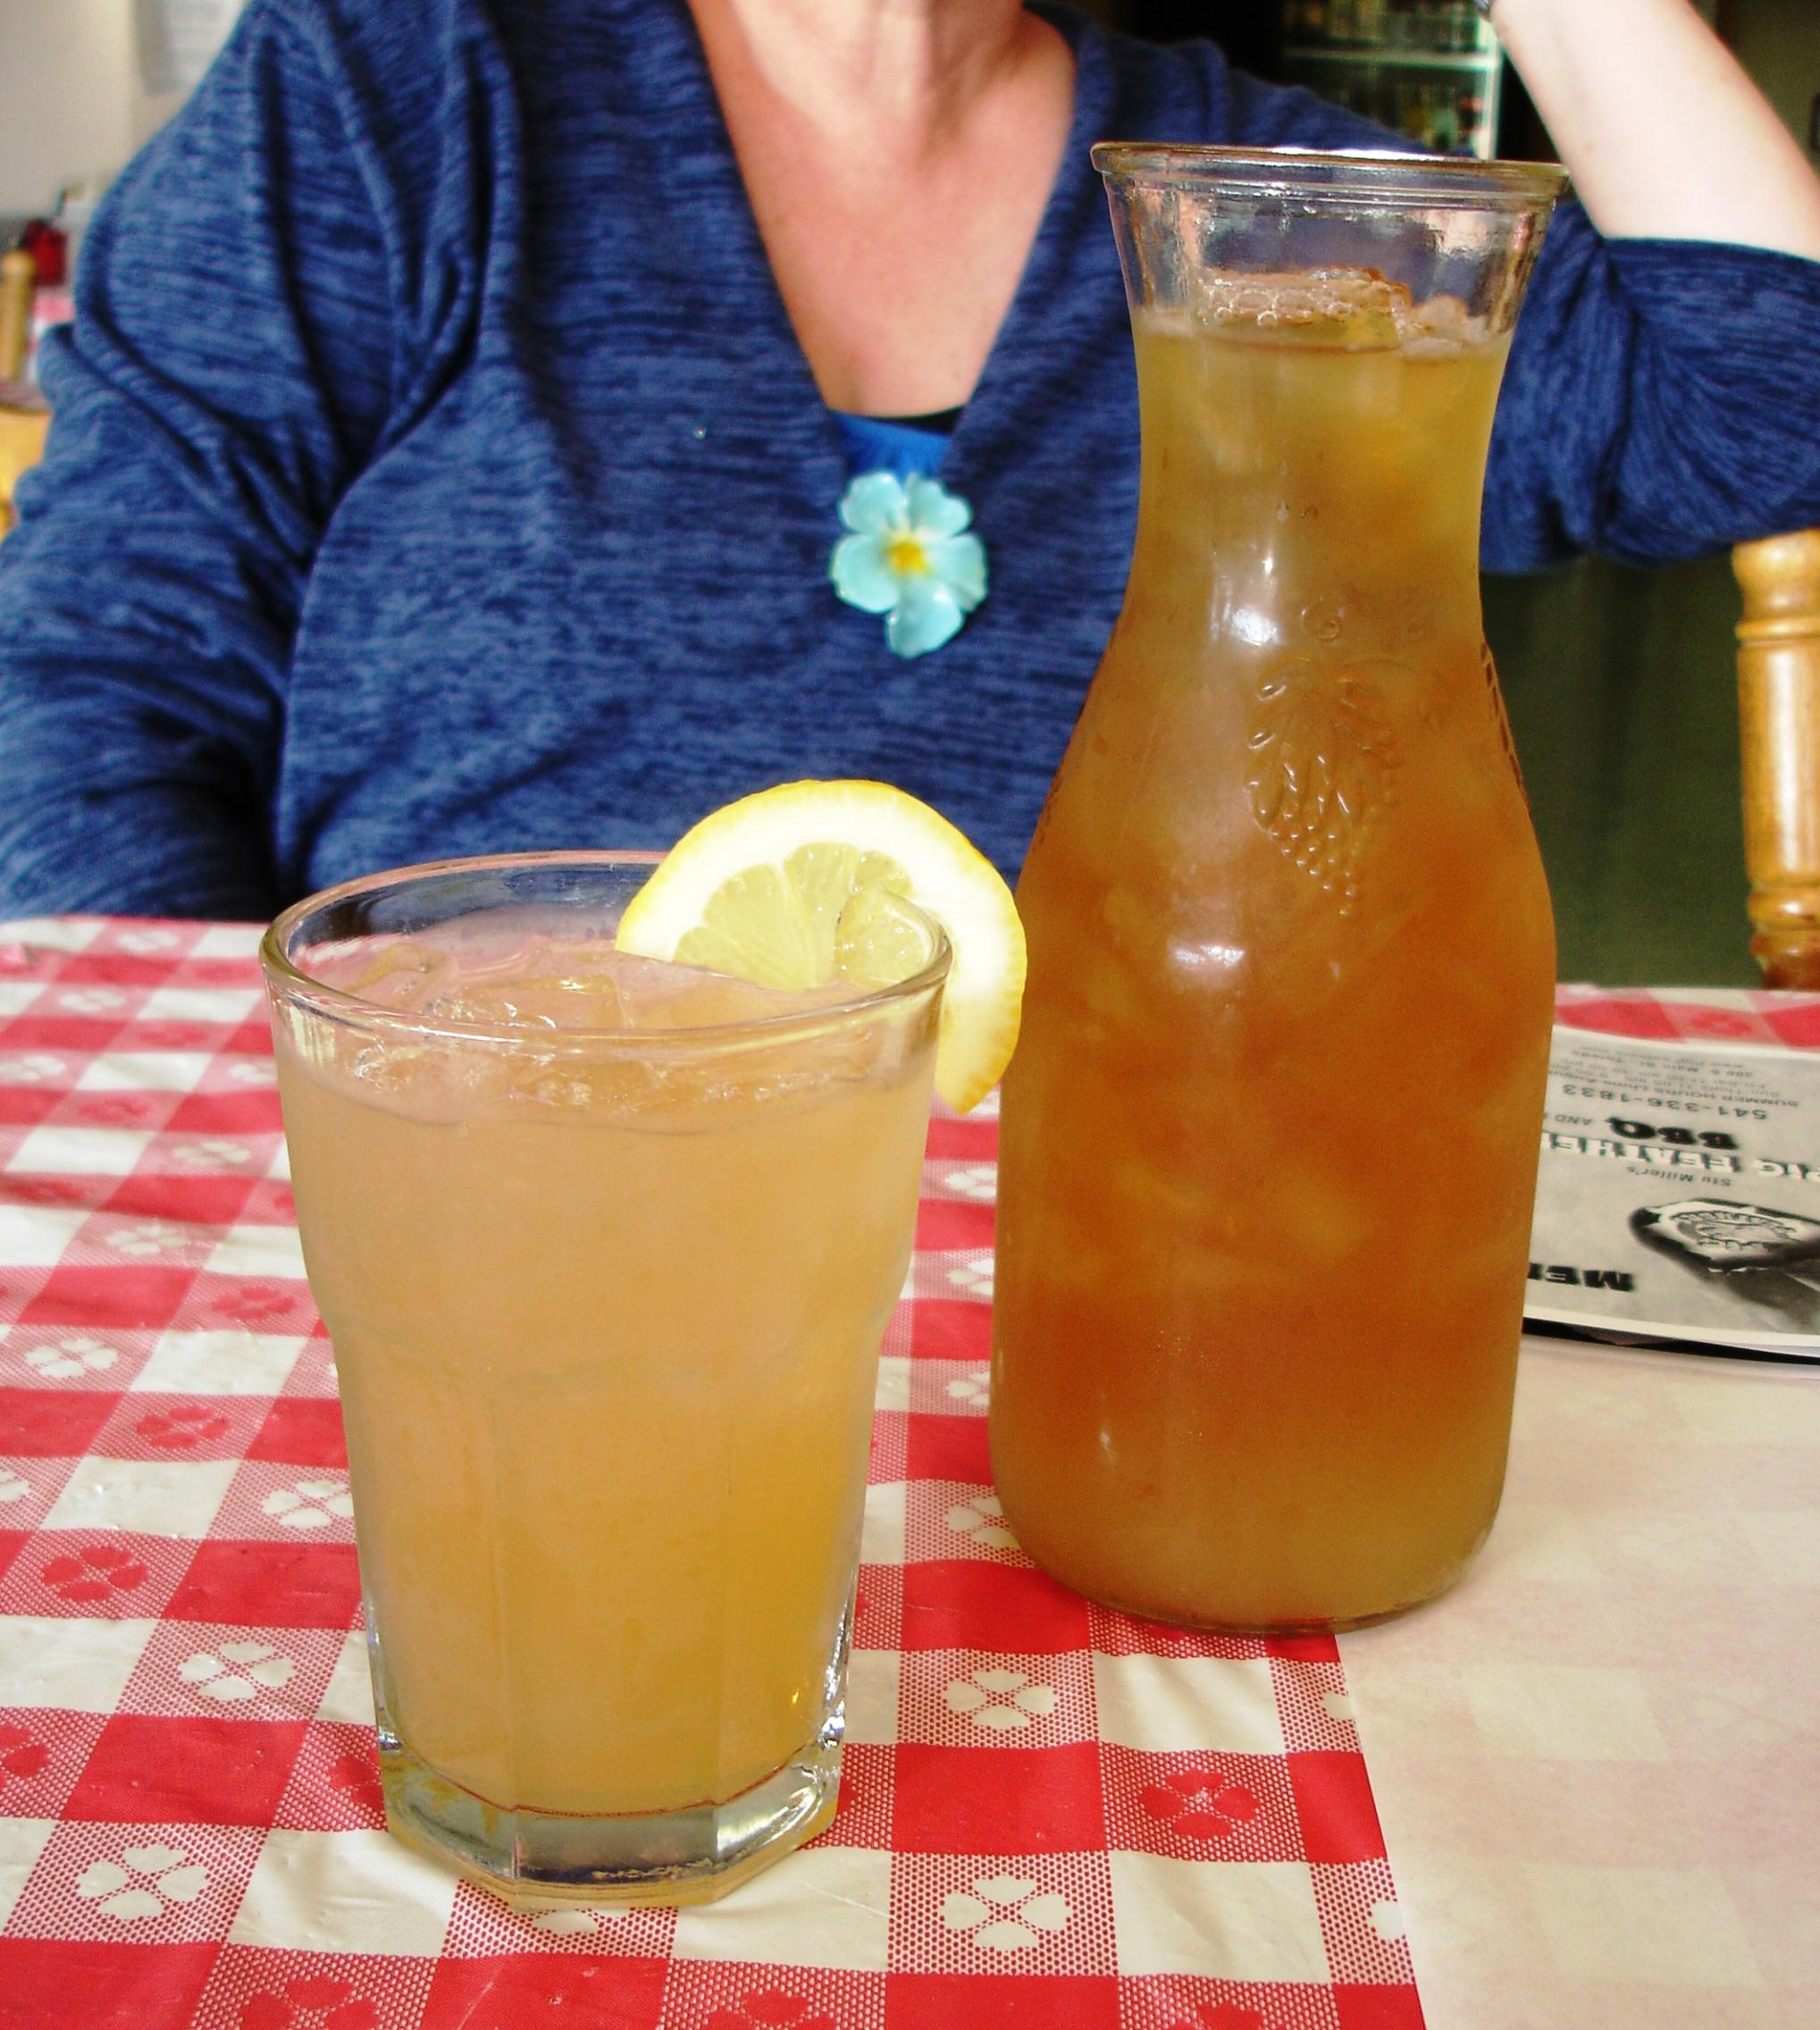 We often find that the care with which we're served simple beverages is an indication of the care put into the food, and restaurant, as a whole. We asked for an Arnold Palmer and this is what we received.